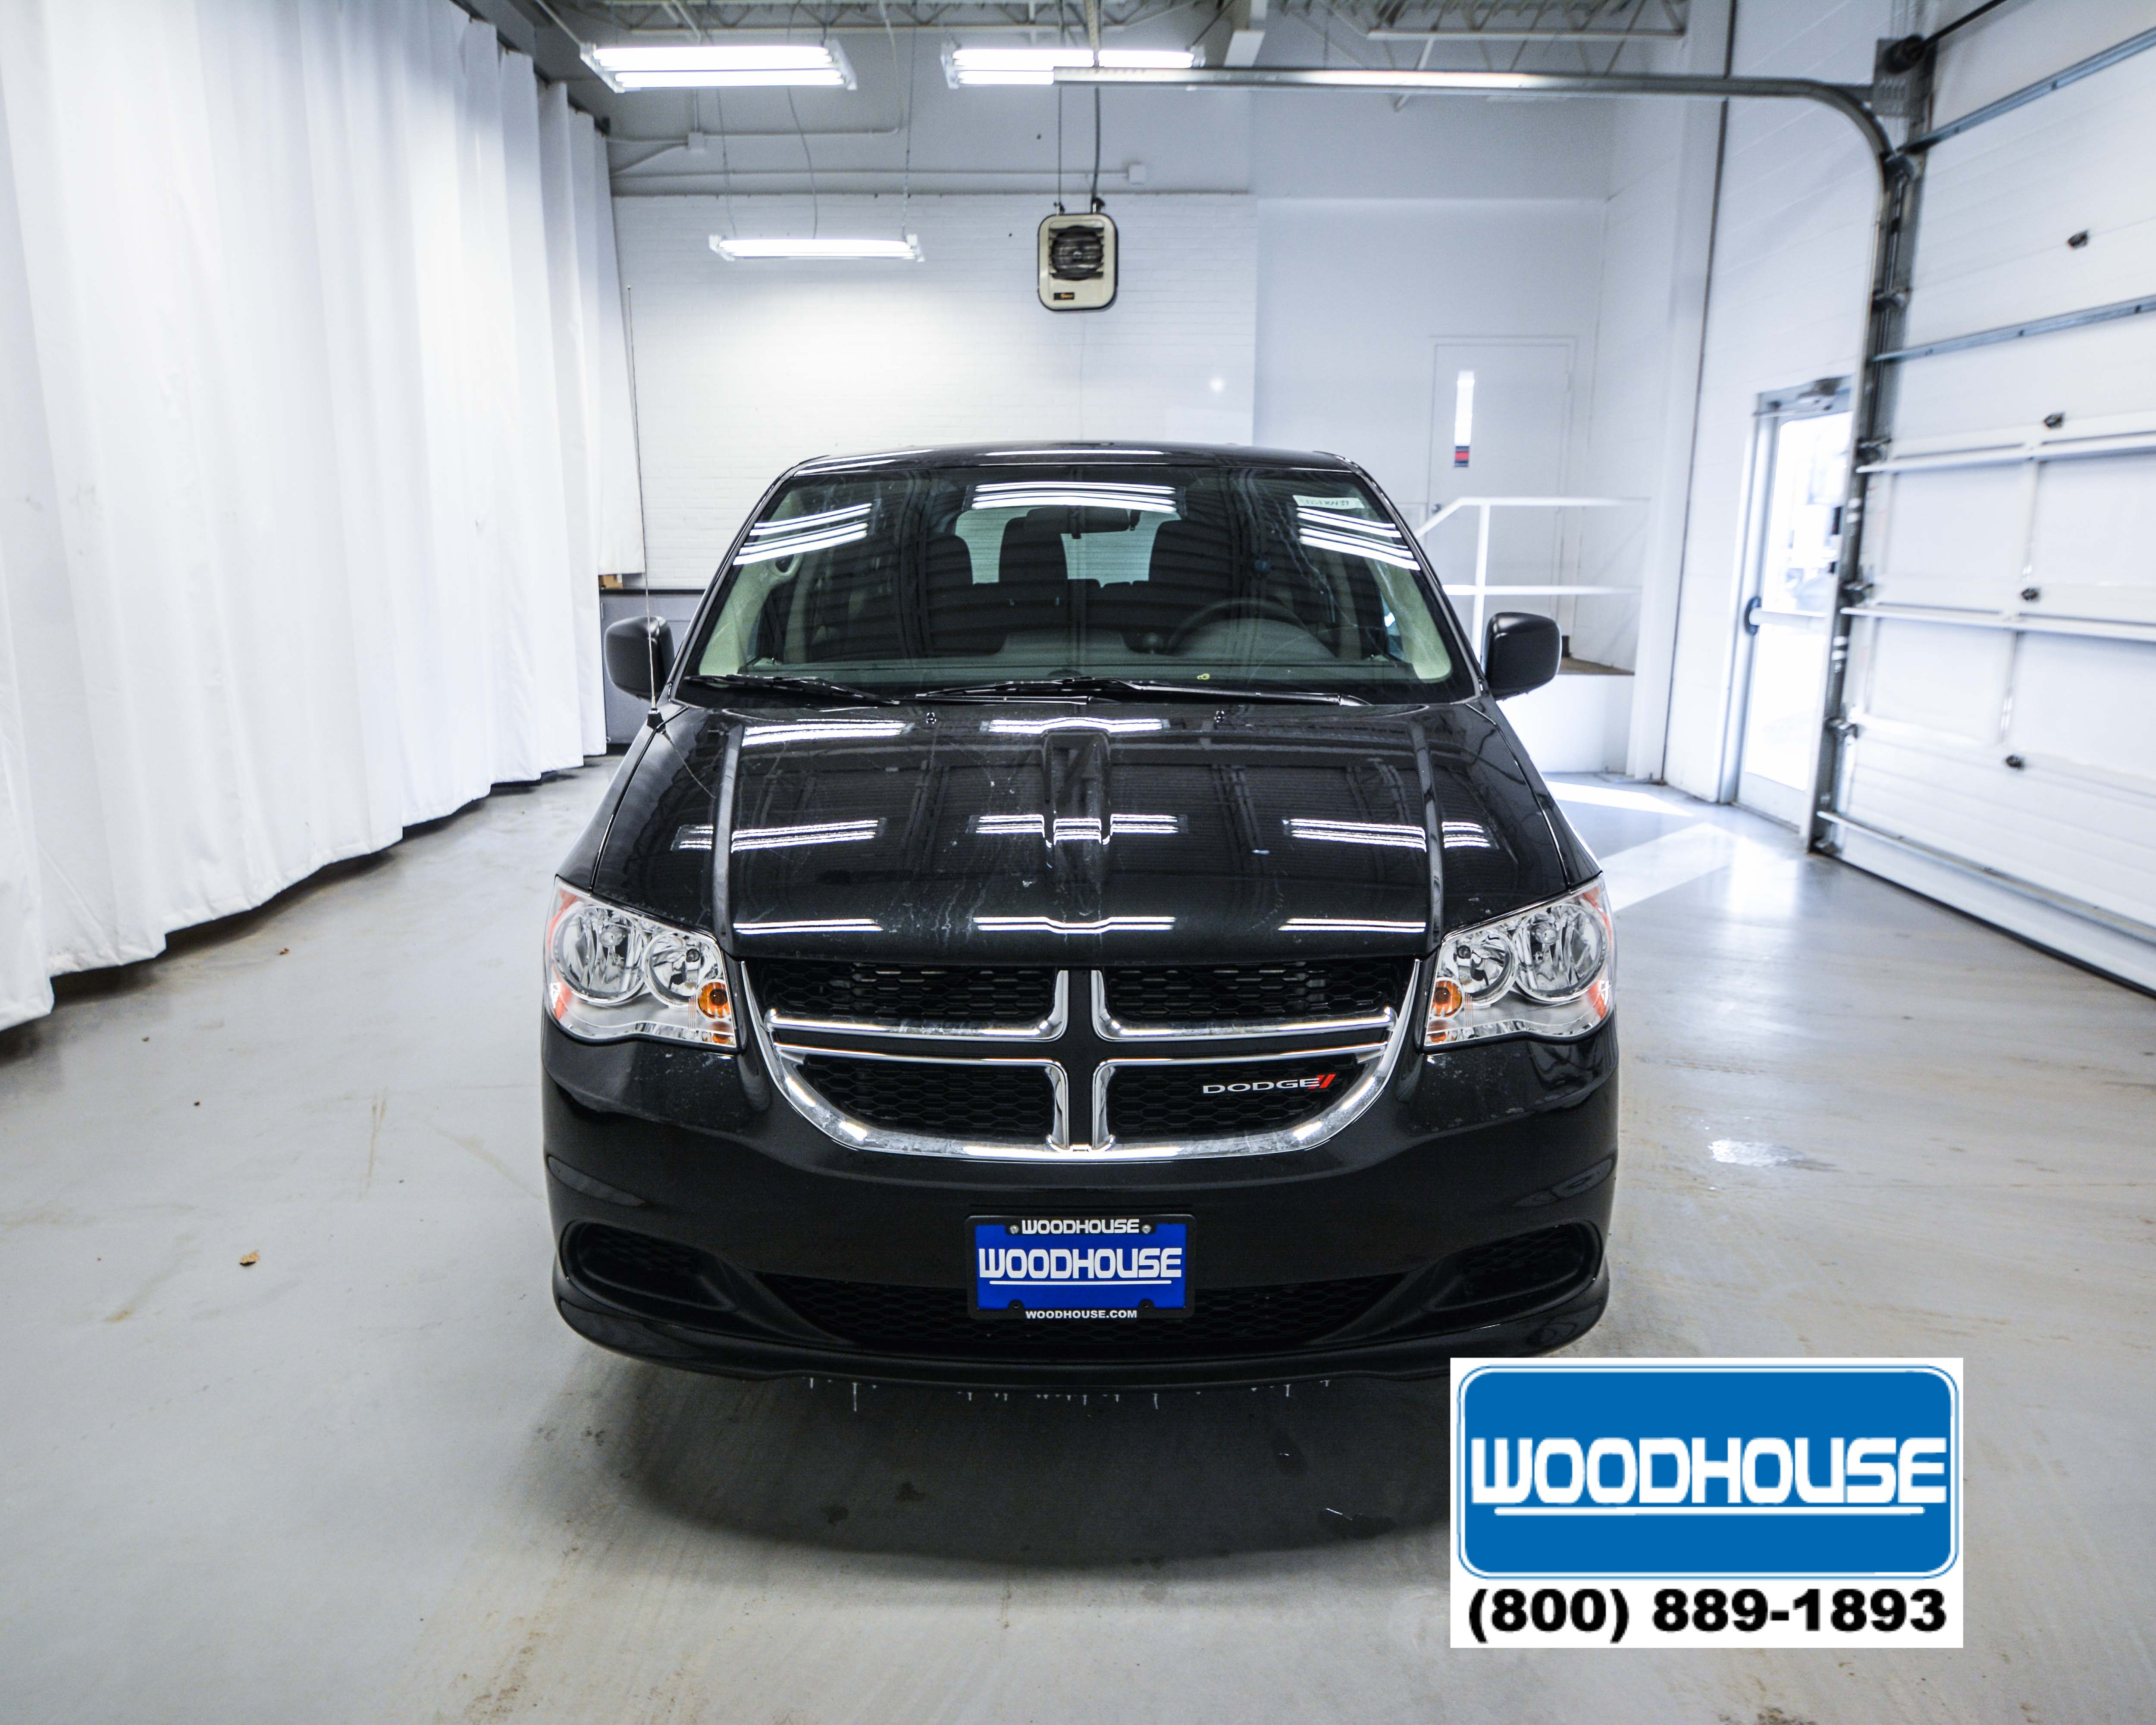 New Used Cars For Sale Omaha Ne Woodhouse Auto Autos Post